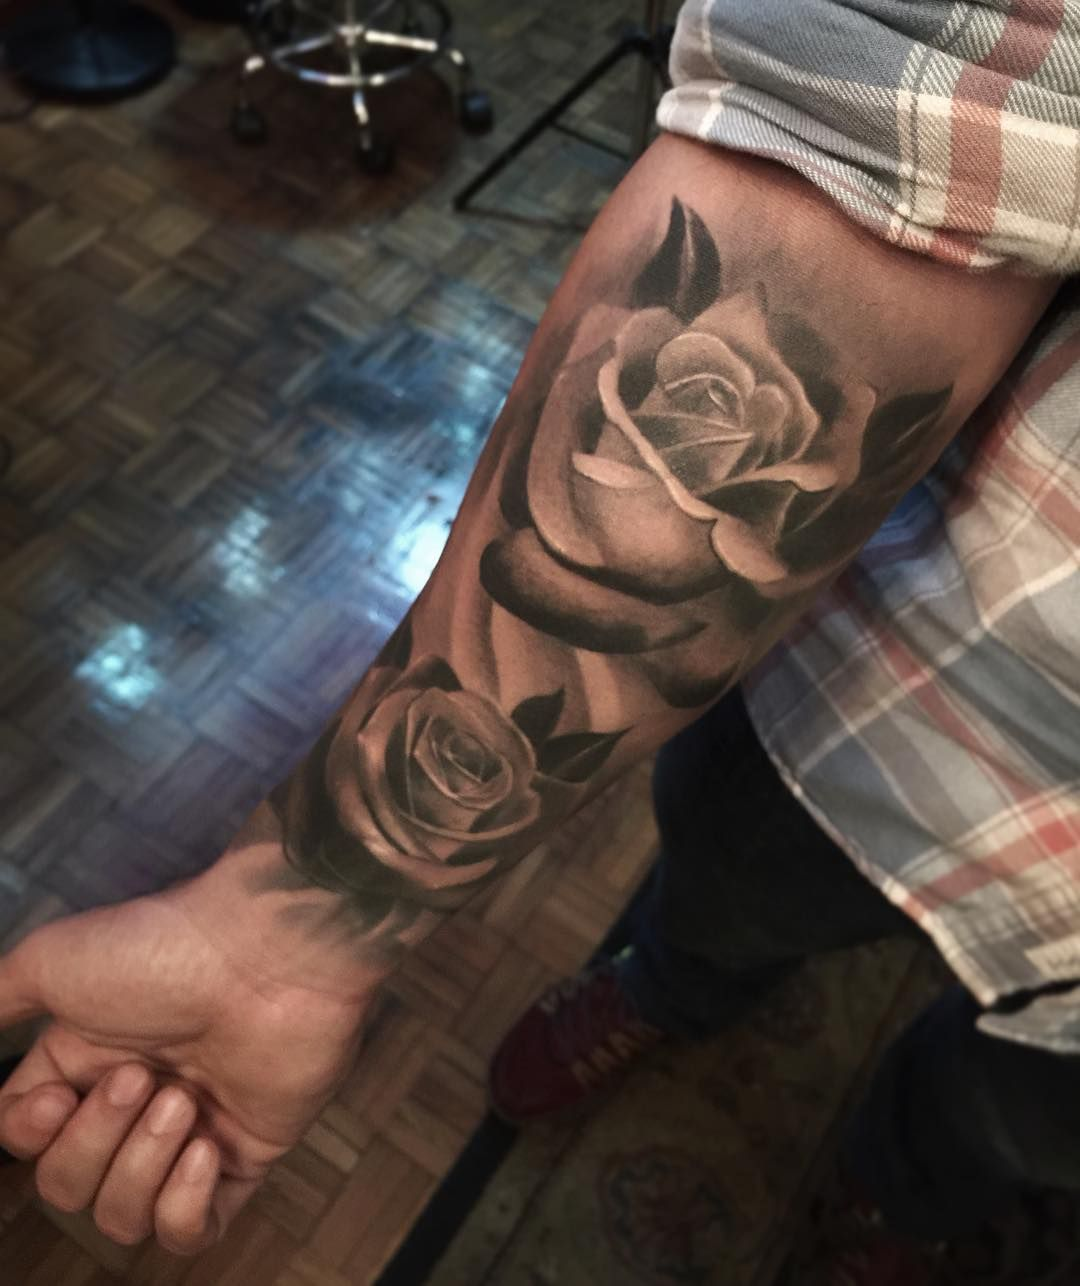 Clock forearm black rose sleeve tattoo - Soft Blackwork Roses Half Sleeve Tattooship Tattoostattoo Armmens